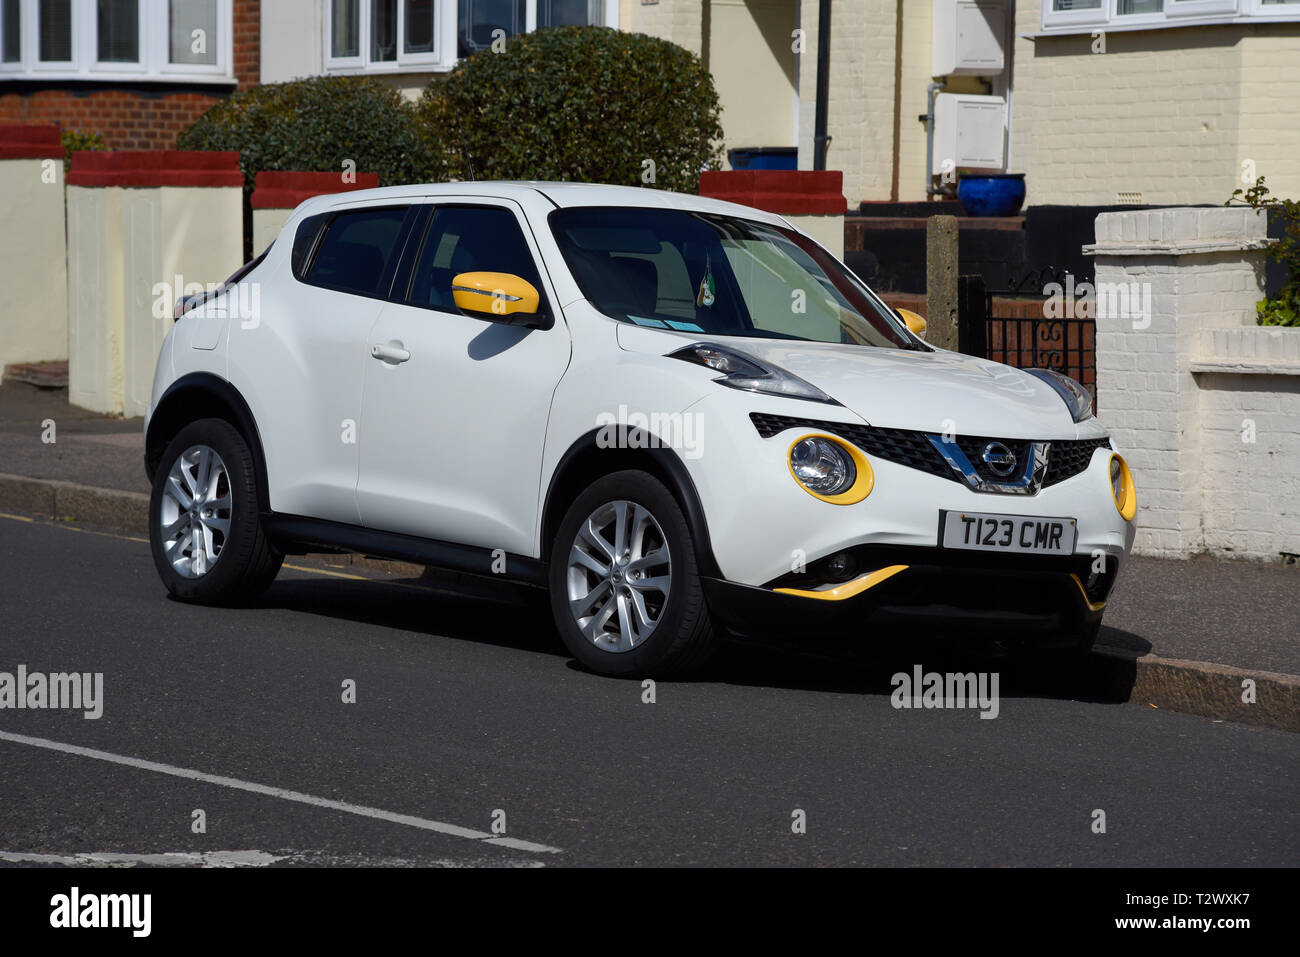 nissan juke high resolution stock photography and images alamy https www alamy com white nissan juke with yellow optional detailing parked in a residential street personalised special number plate suv crossover built in uk nmuk image242744187 html